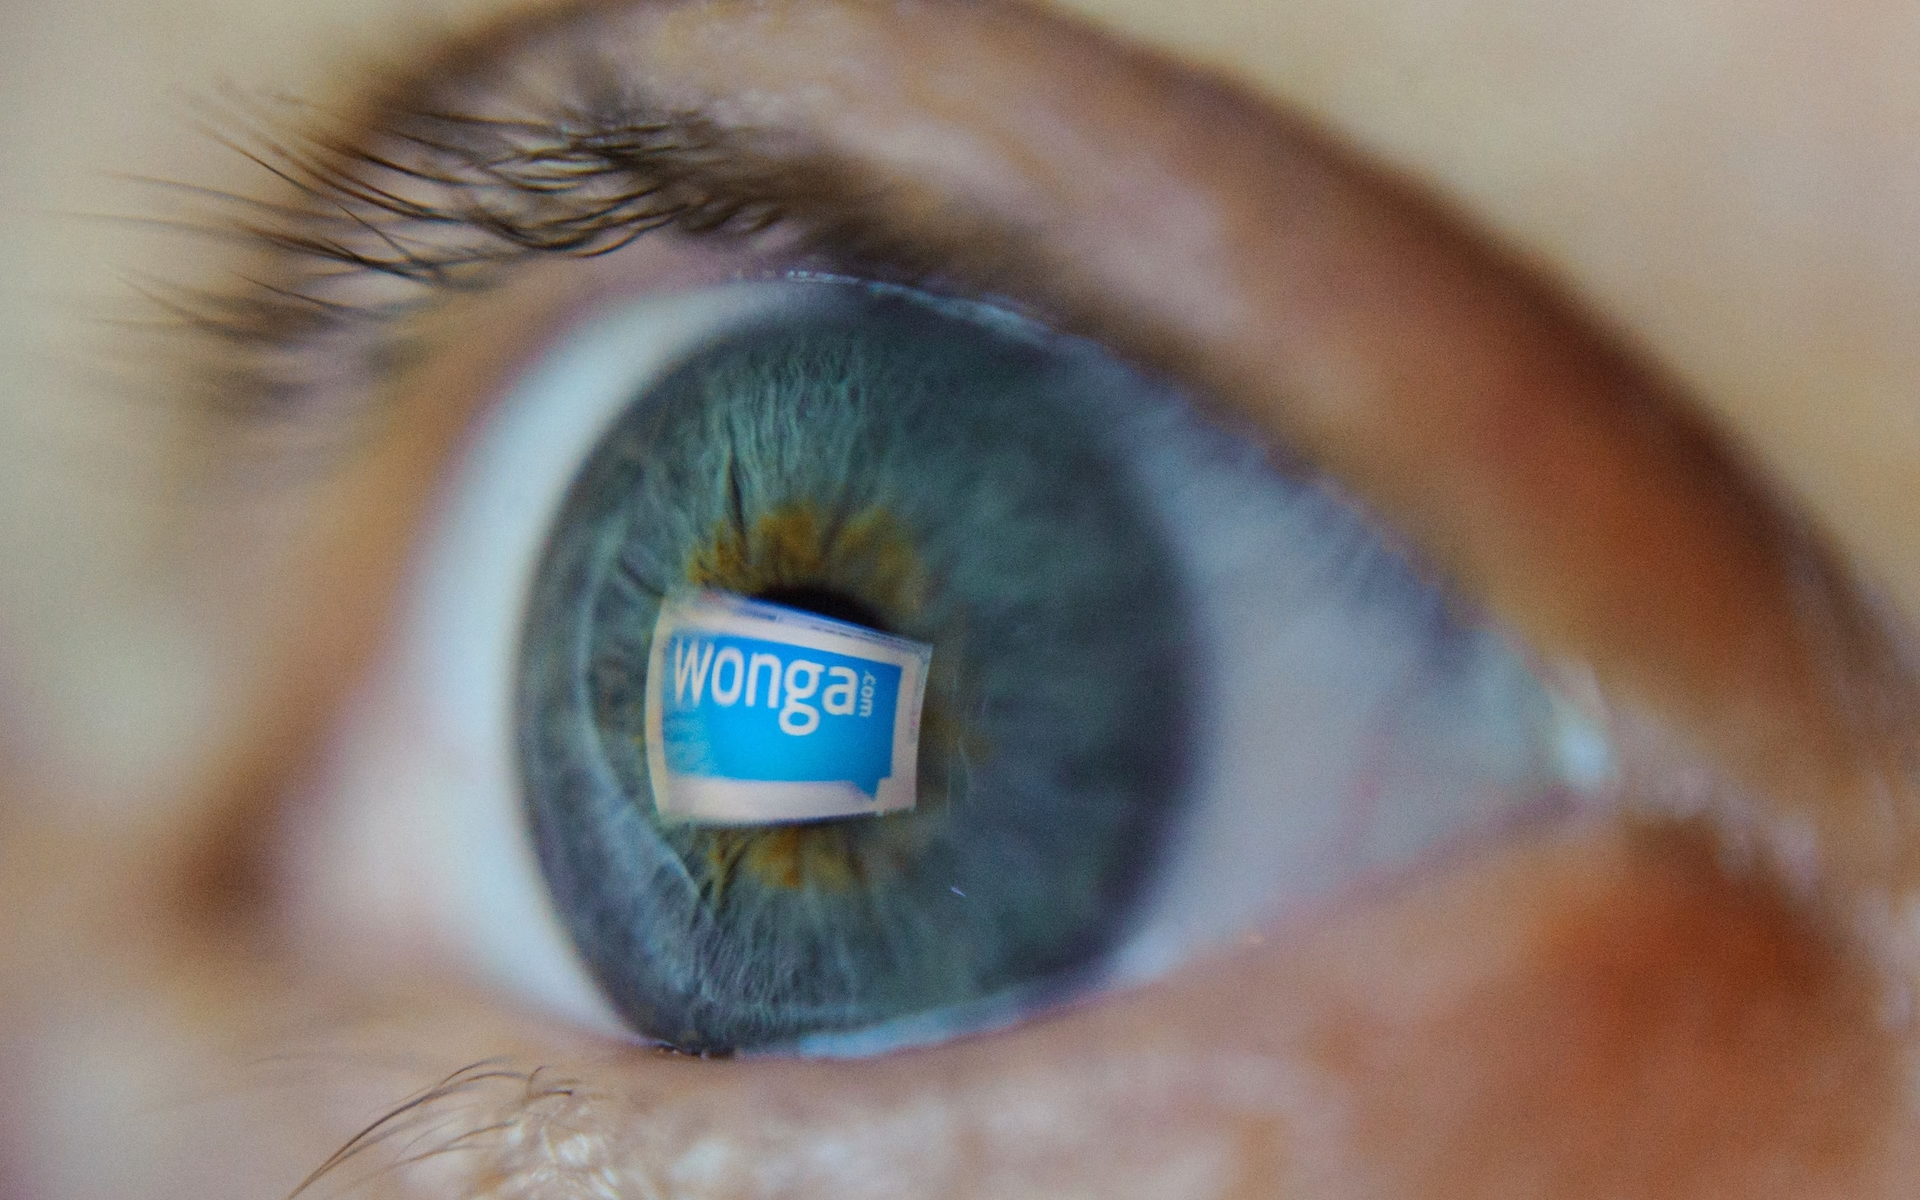 A close up of a person's blue eye with a Wonga logo reflected in it